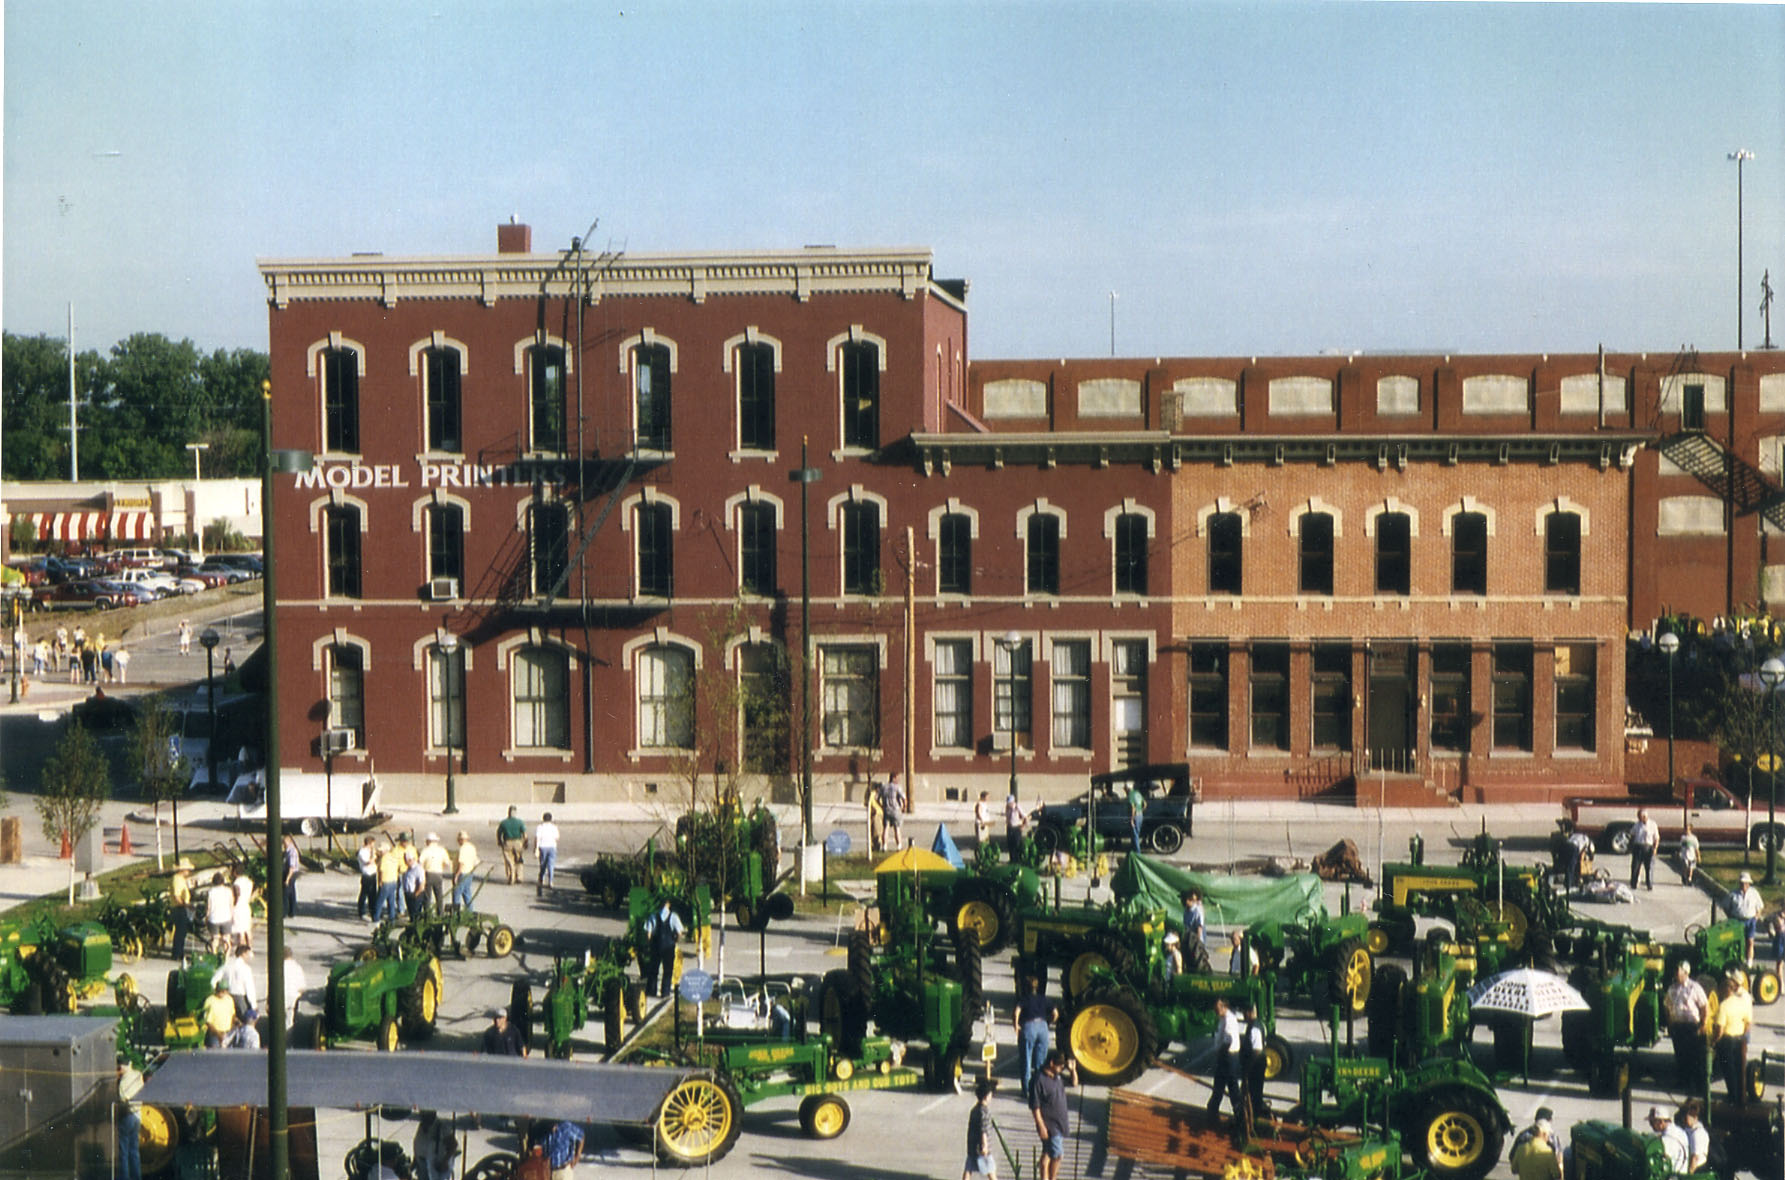 A display of John Deere tractors and other farm equipment Moline, Illinois. A blacksmith named John Deere moved his plow factory to Moline in 1848, and the company maintains a strong presence in the area.